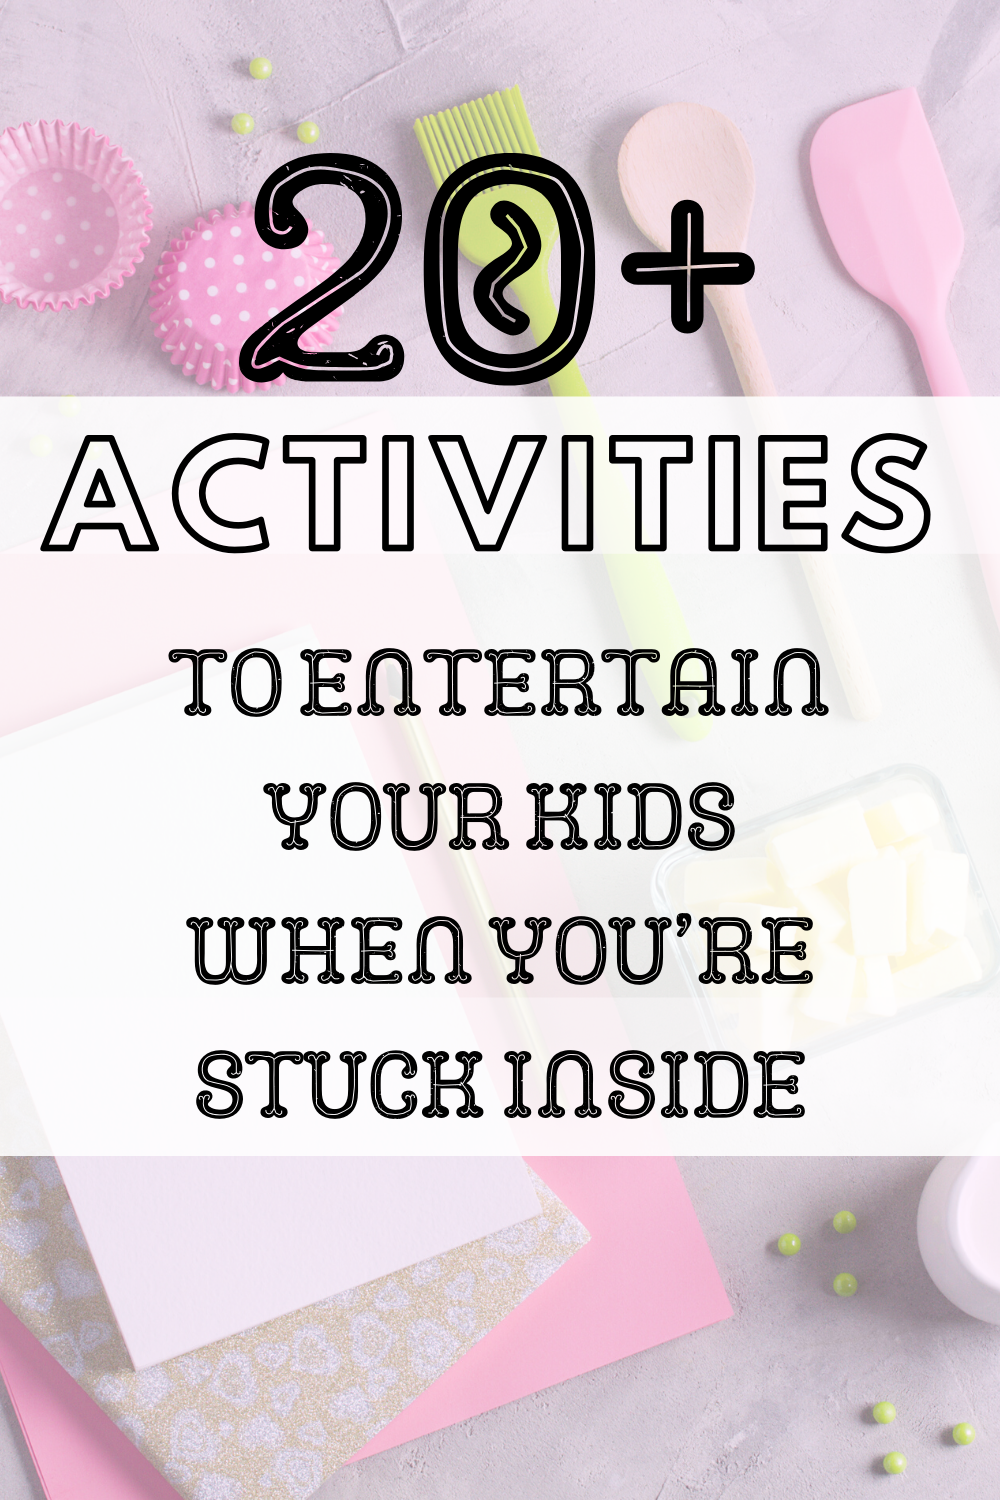 Ways to entertain your kids when you're stuck inaide